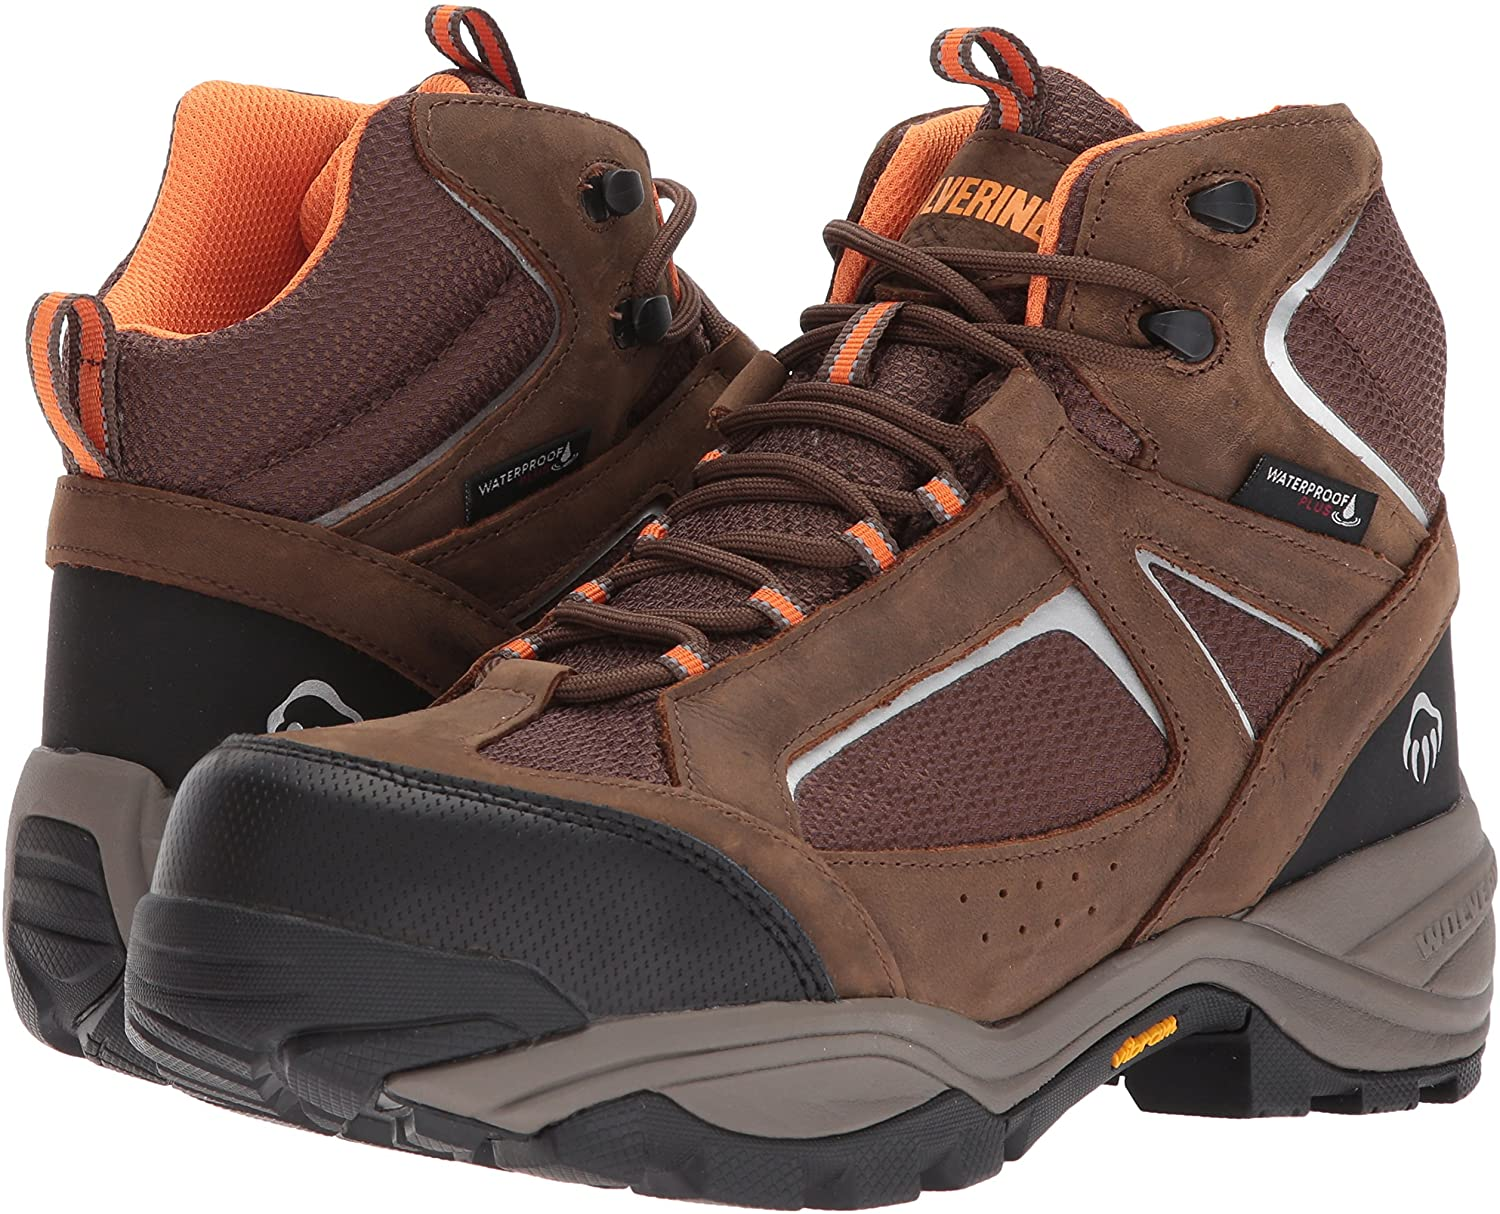 A pair of Wolverine boots will keep you safe during work.